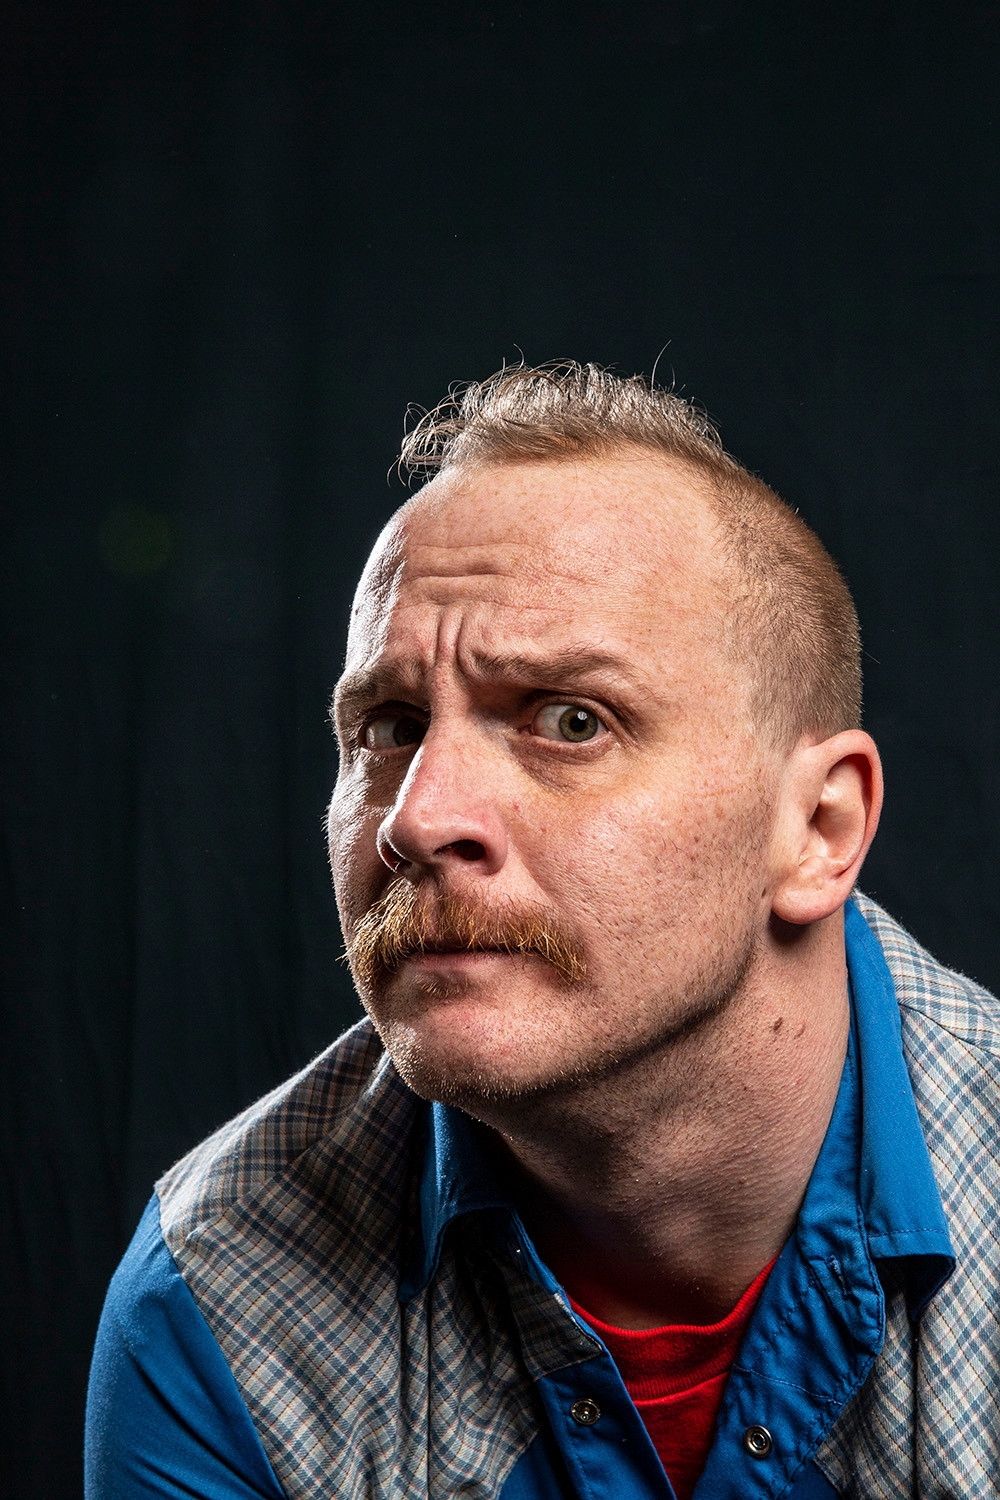 comedian Nate Barron tries his best to look serious